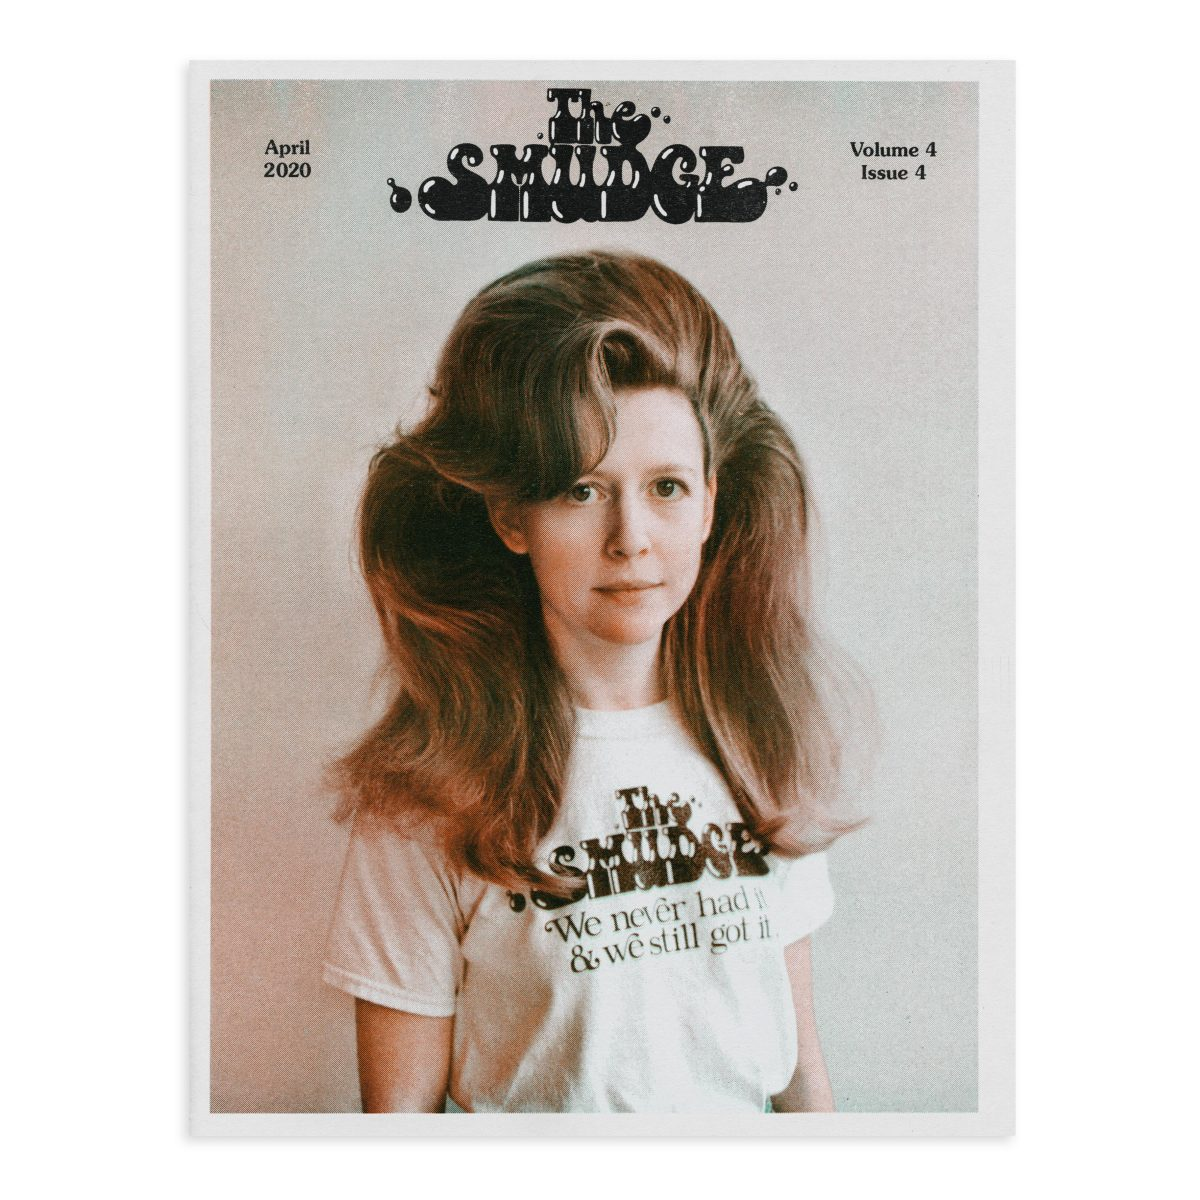 Web Covers Vol 4 issue 4